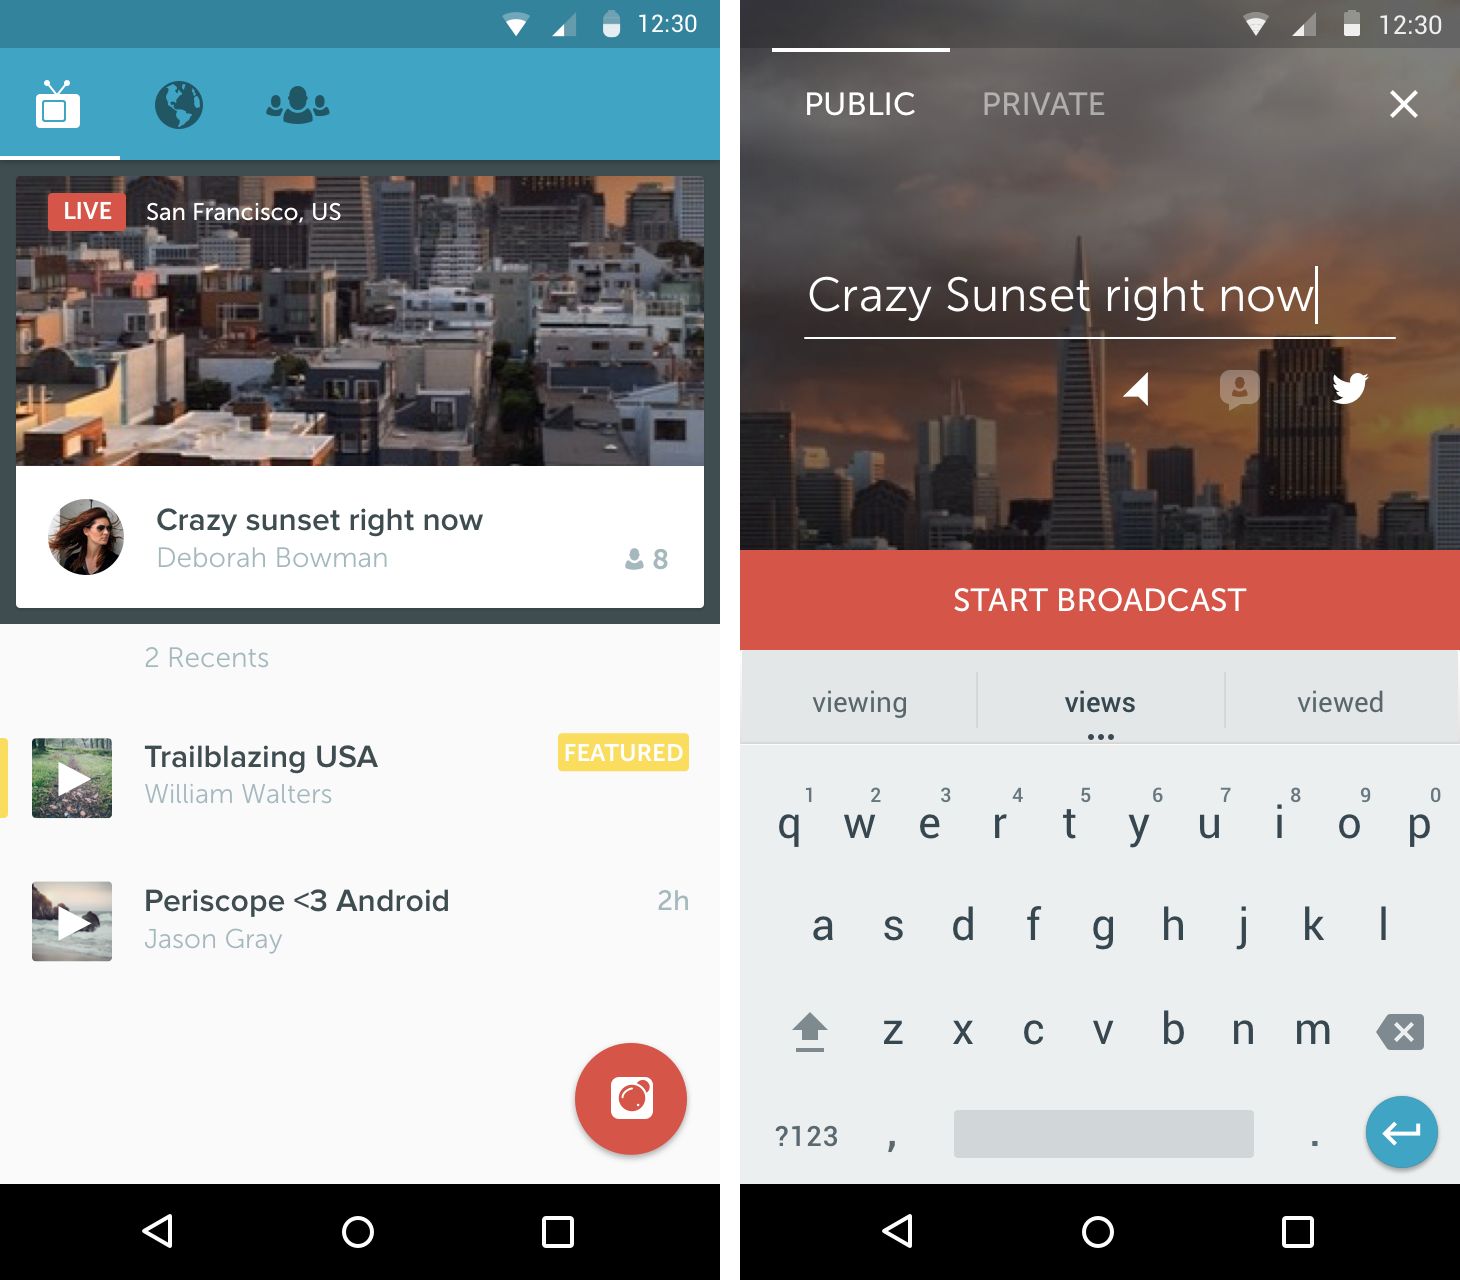 Twitter brings livestreaming app Periscope to Android